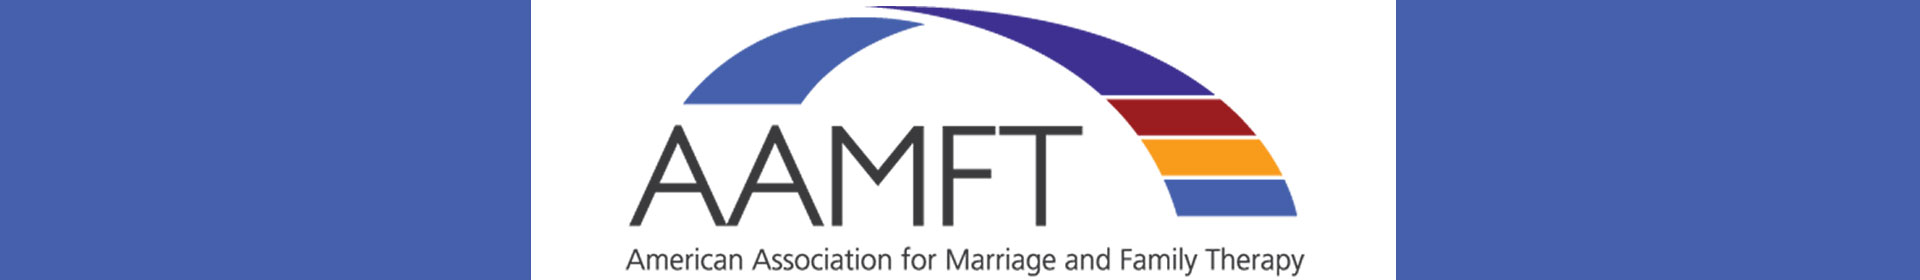 2020 AAMFT Annual Meeting Event Banner